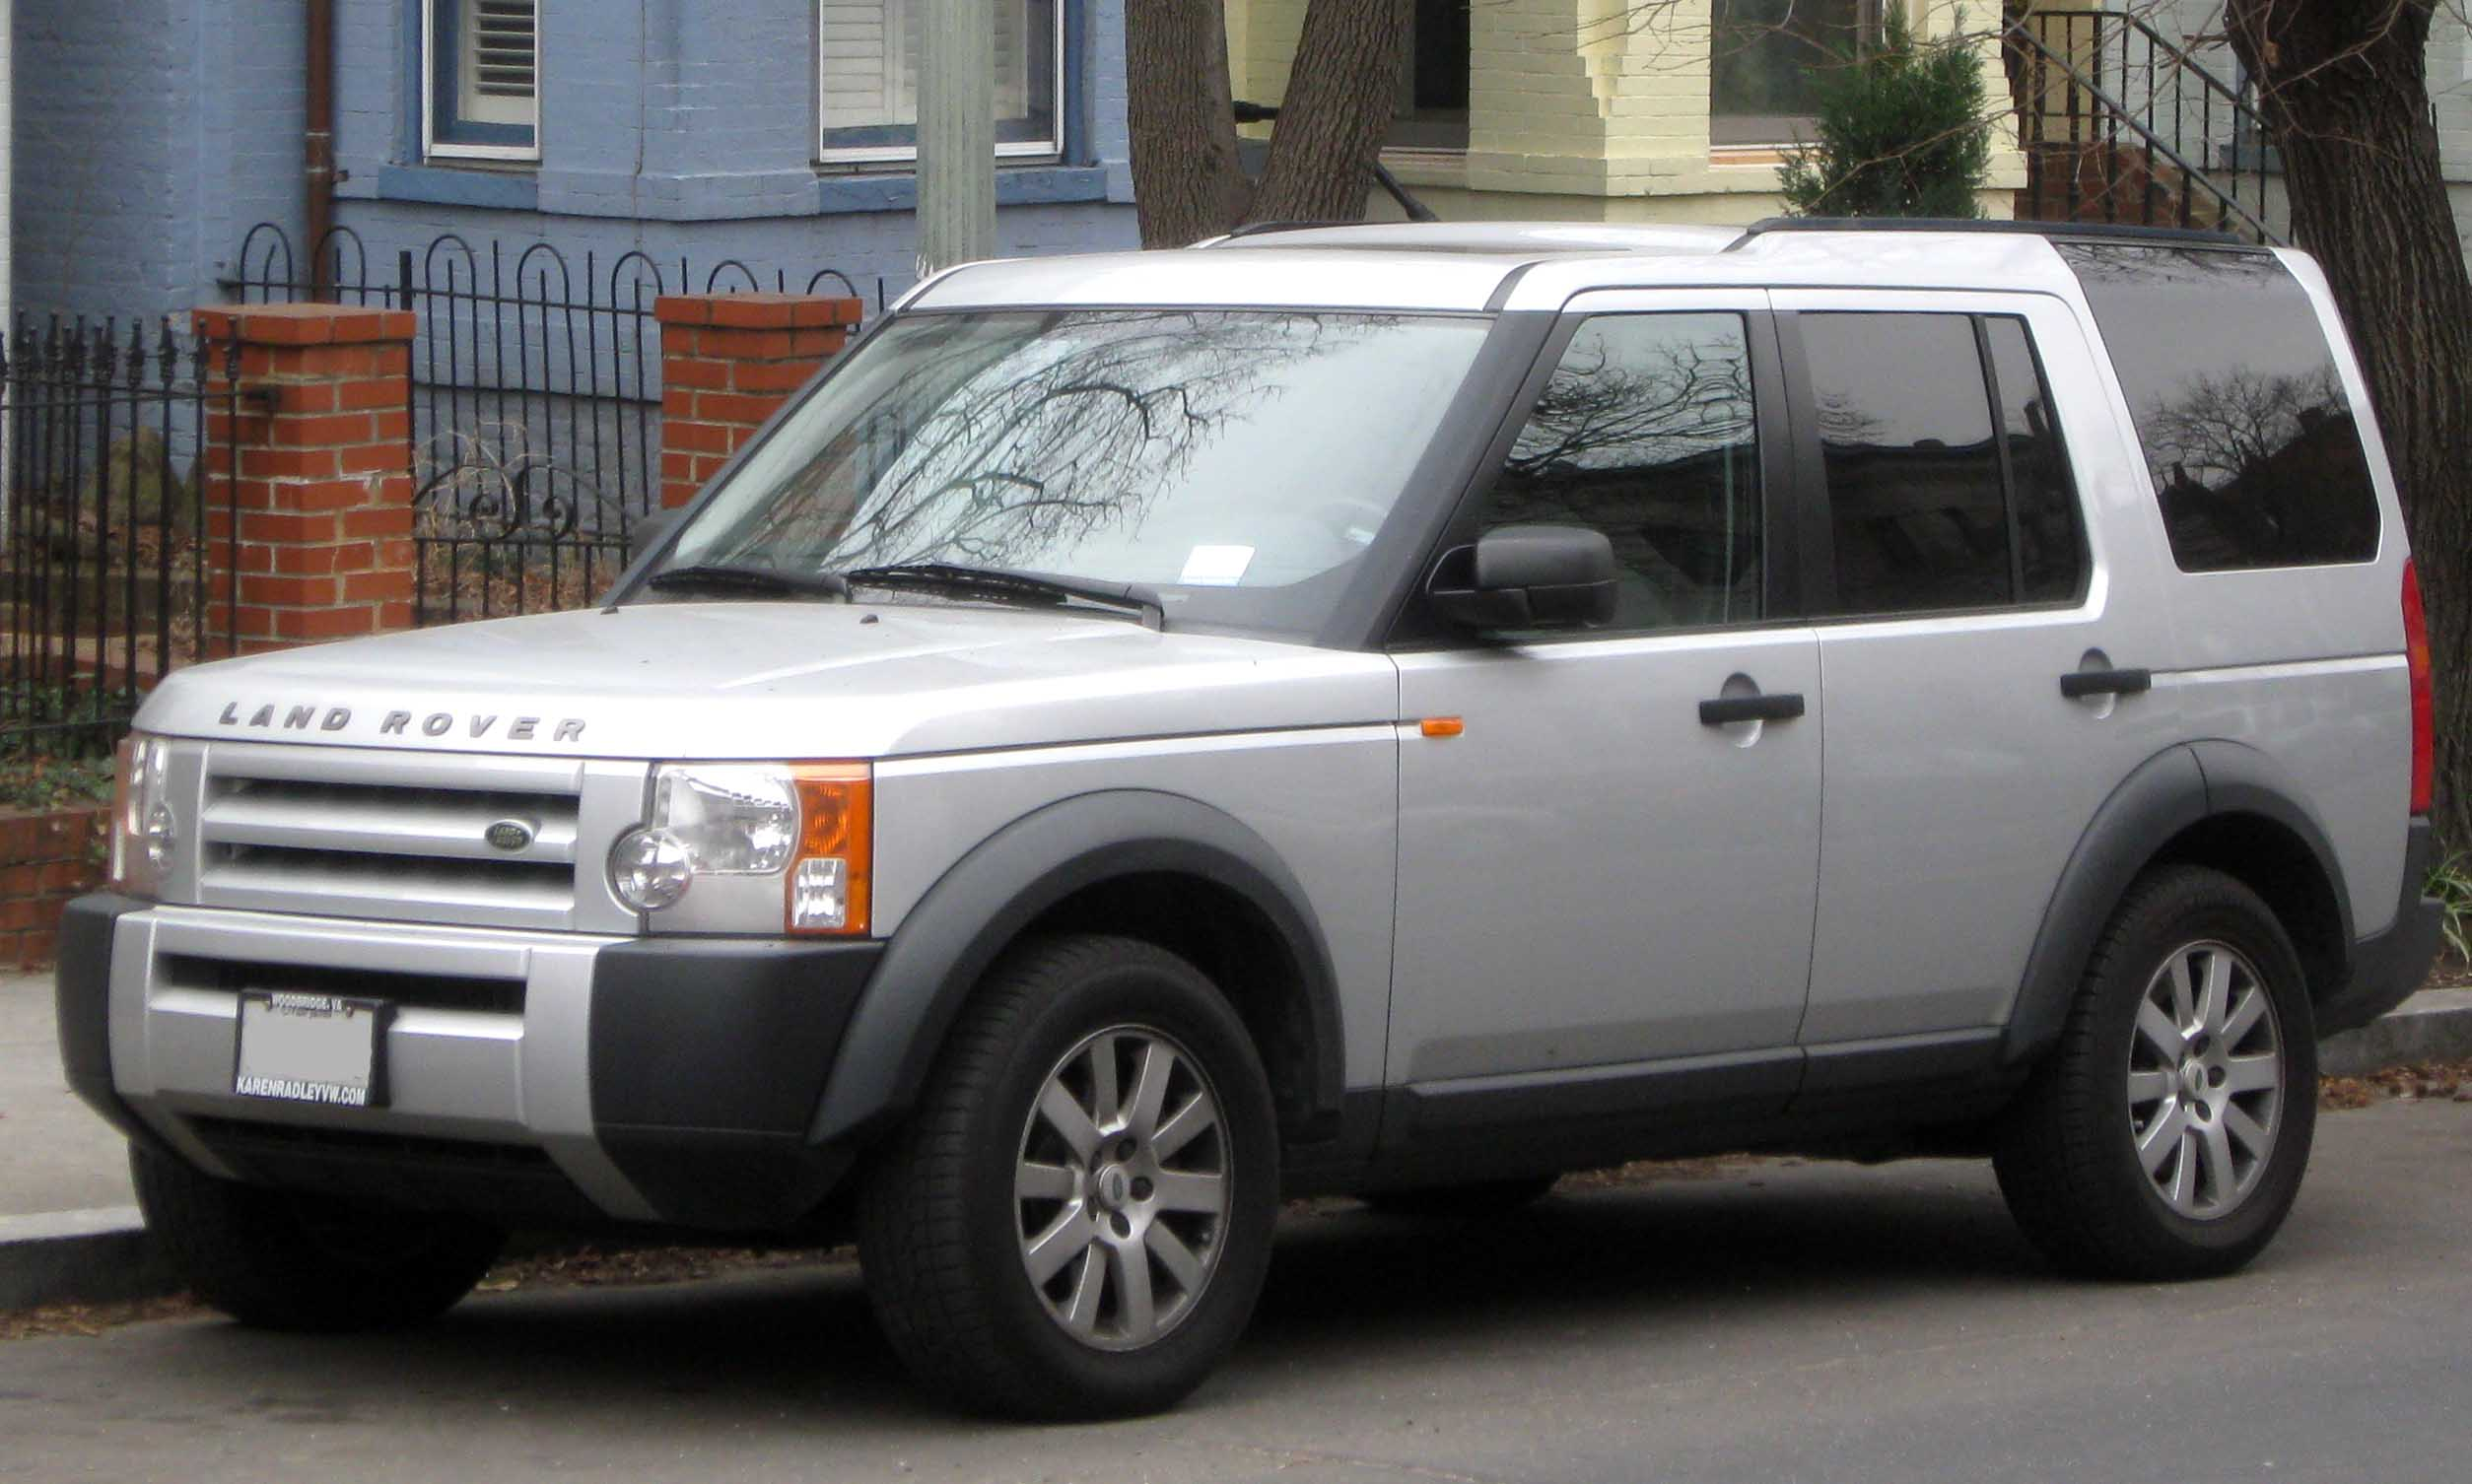 File:Land Rover LR3 .jpg - Wikimedia Commons